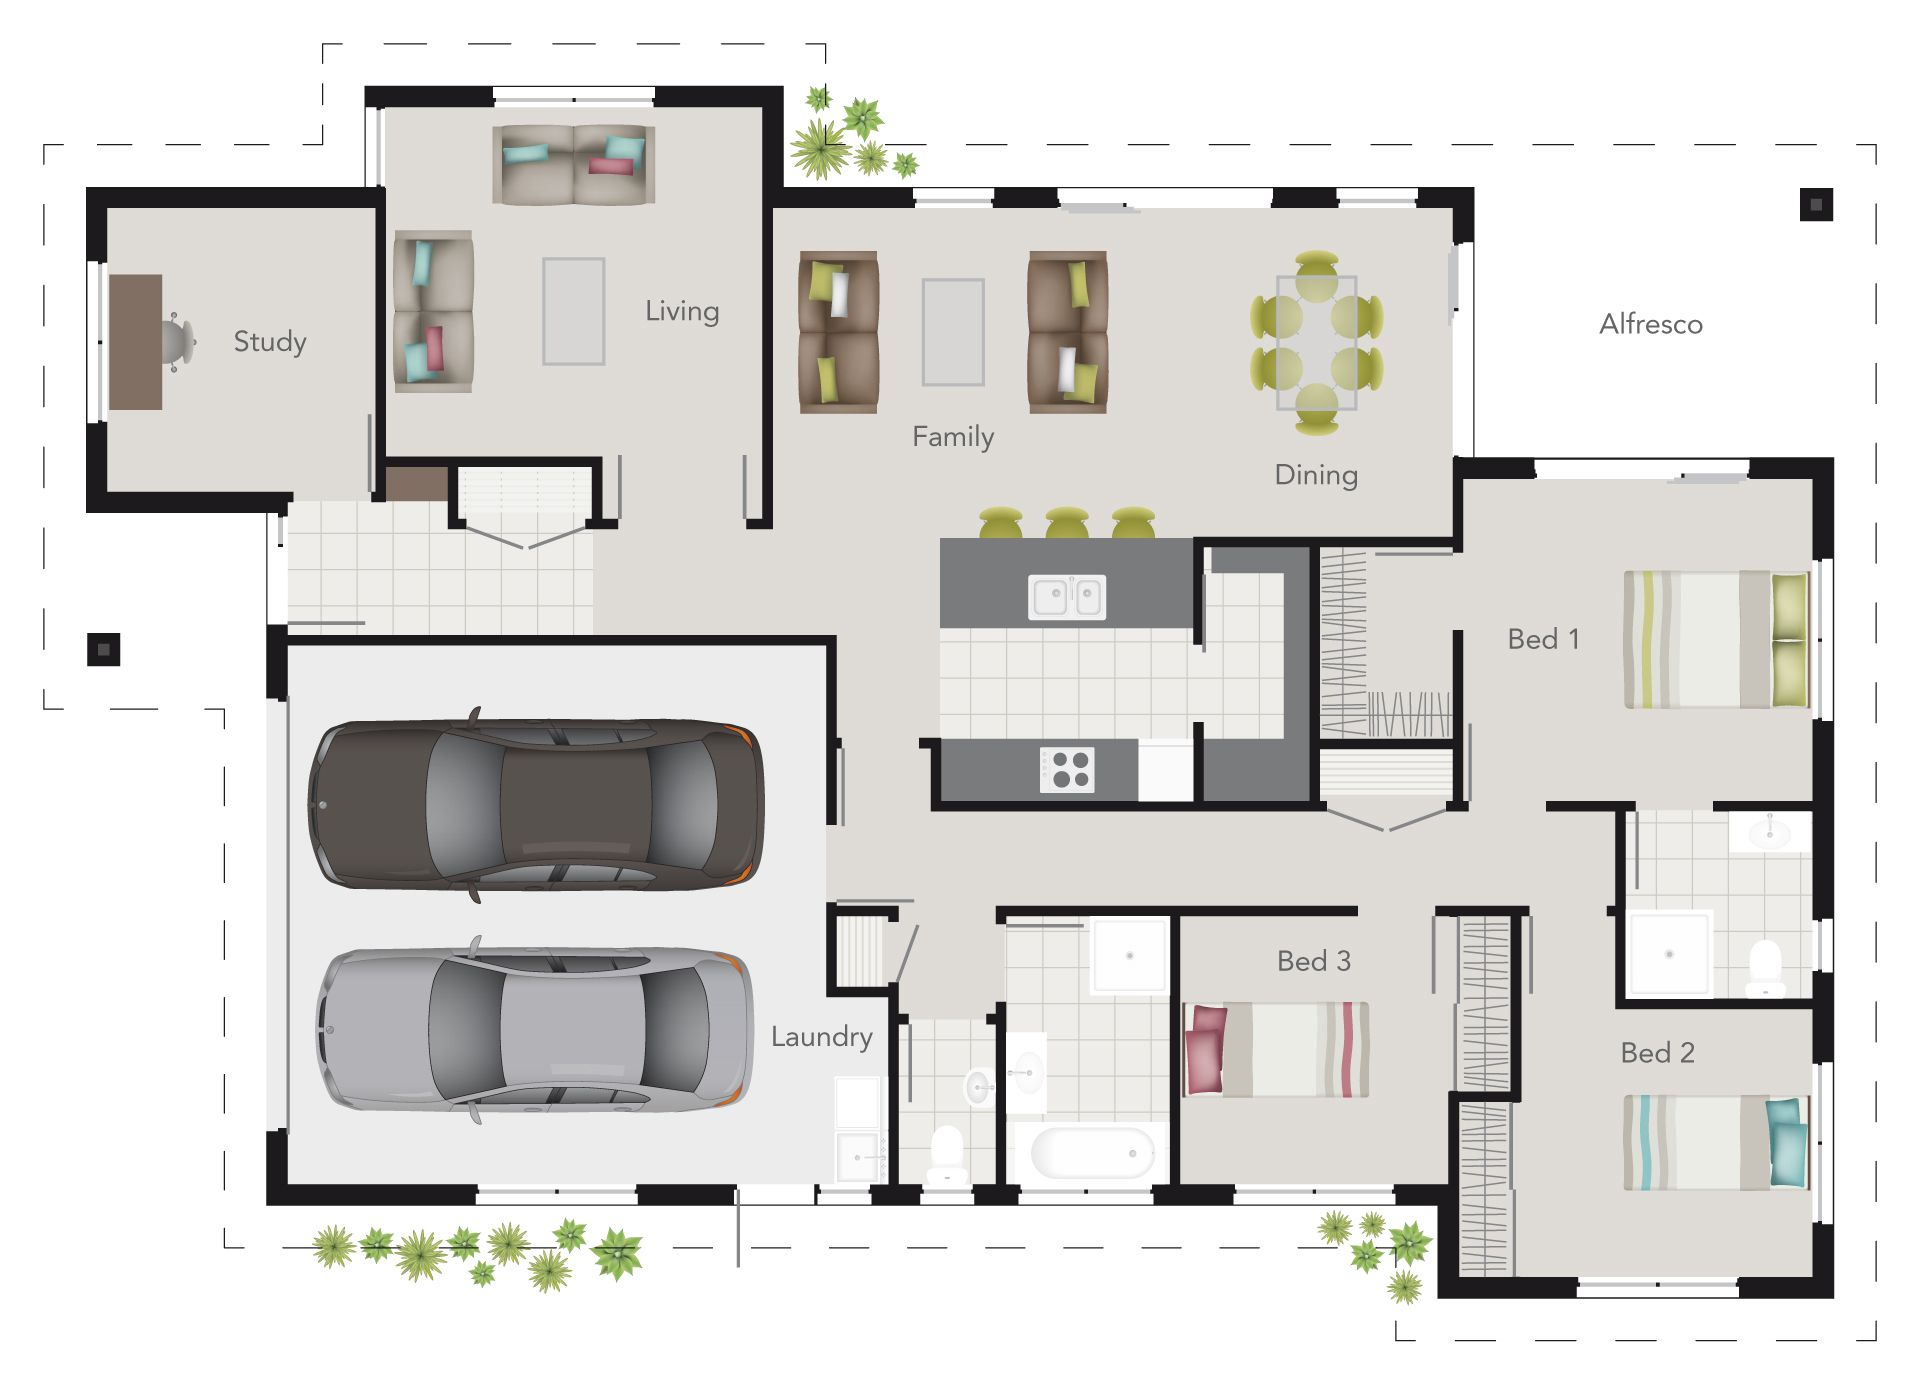 G j gardner wright plan 3 bedroom floor plan with study and living room selection of our g - House plan design rooms ...